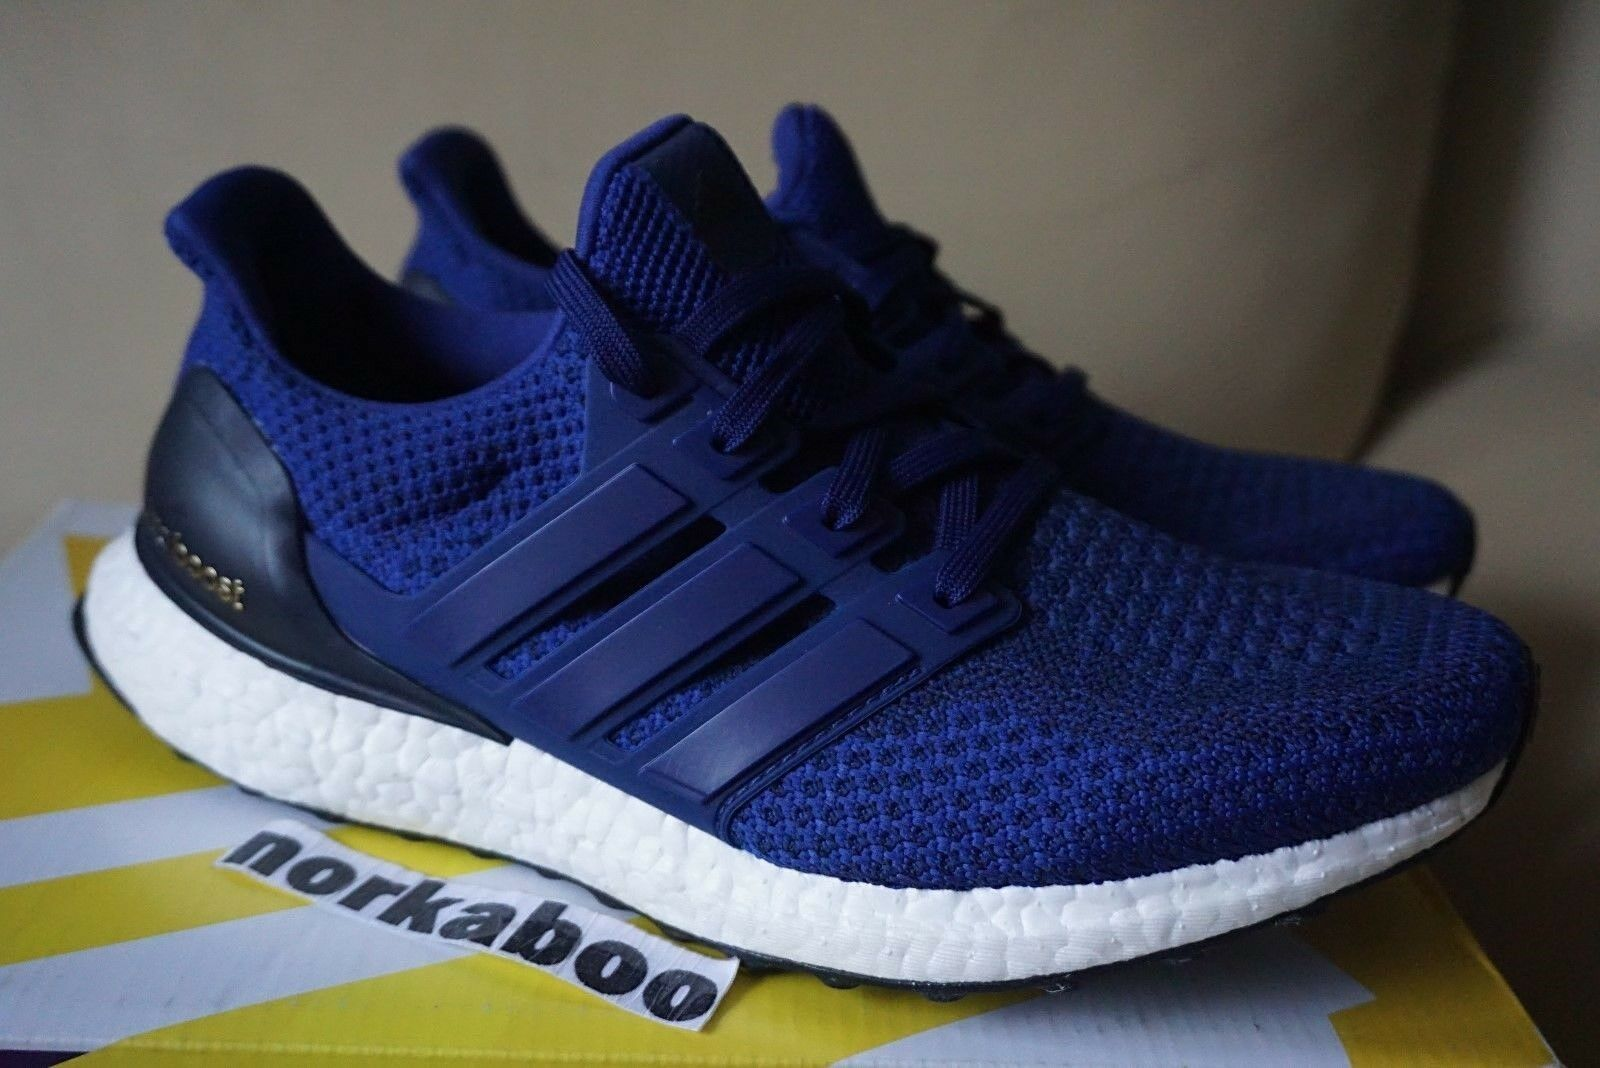 Adidas Women's Ultra Boost Blue White Black AQ5933 size wmns 5.5 6 7 9 New shoes for men and women, limited time discount